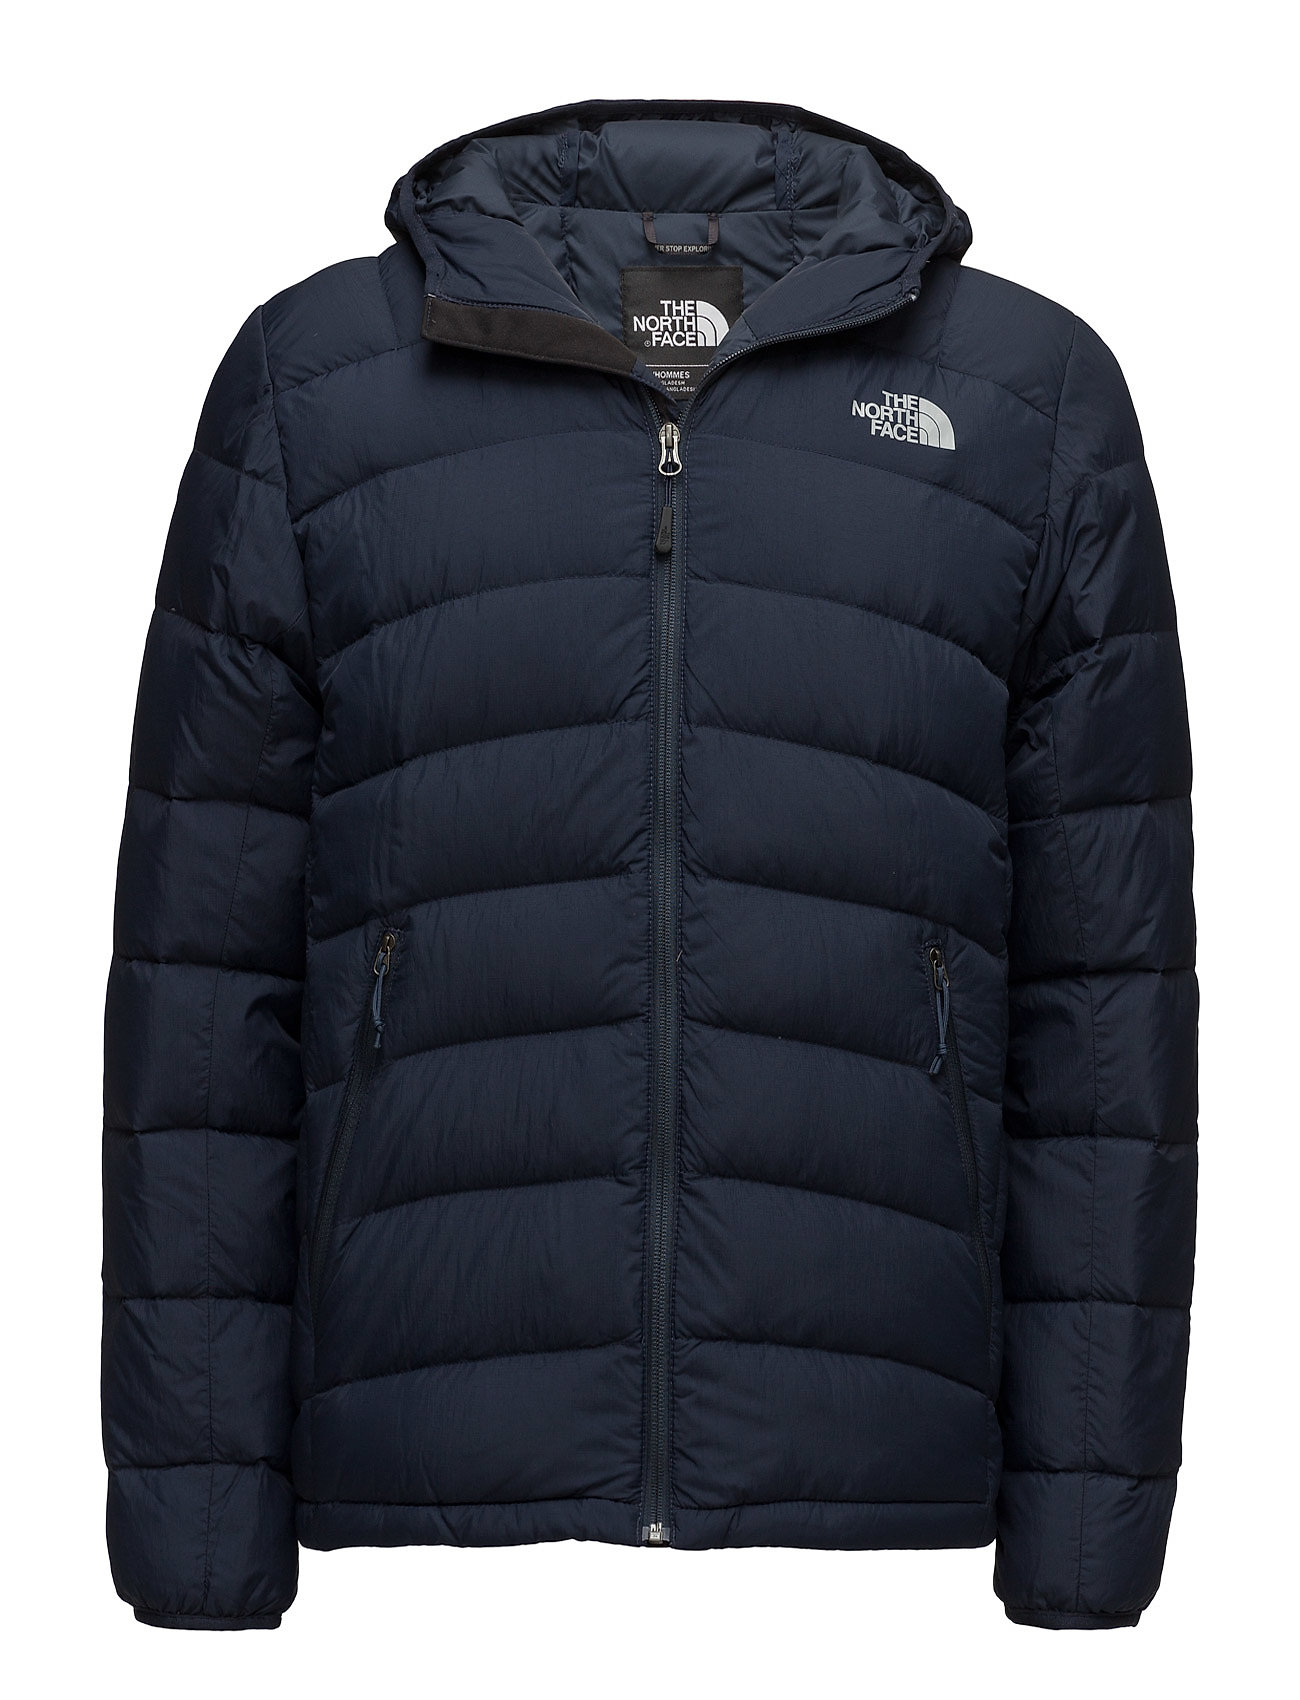 the north face – M la paz hooded jkt på boozt.com dk